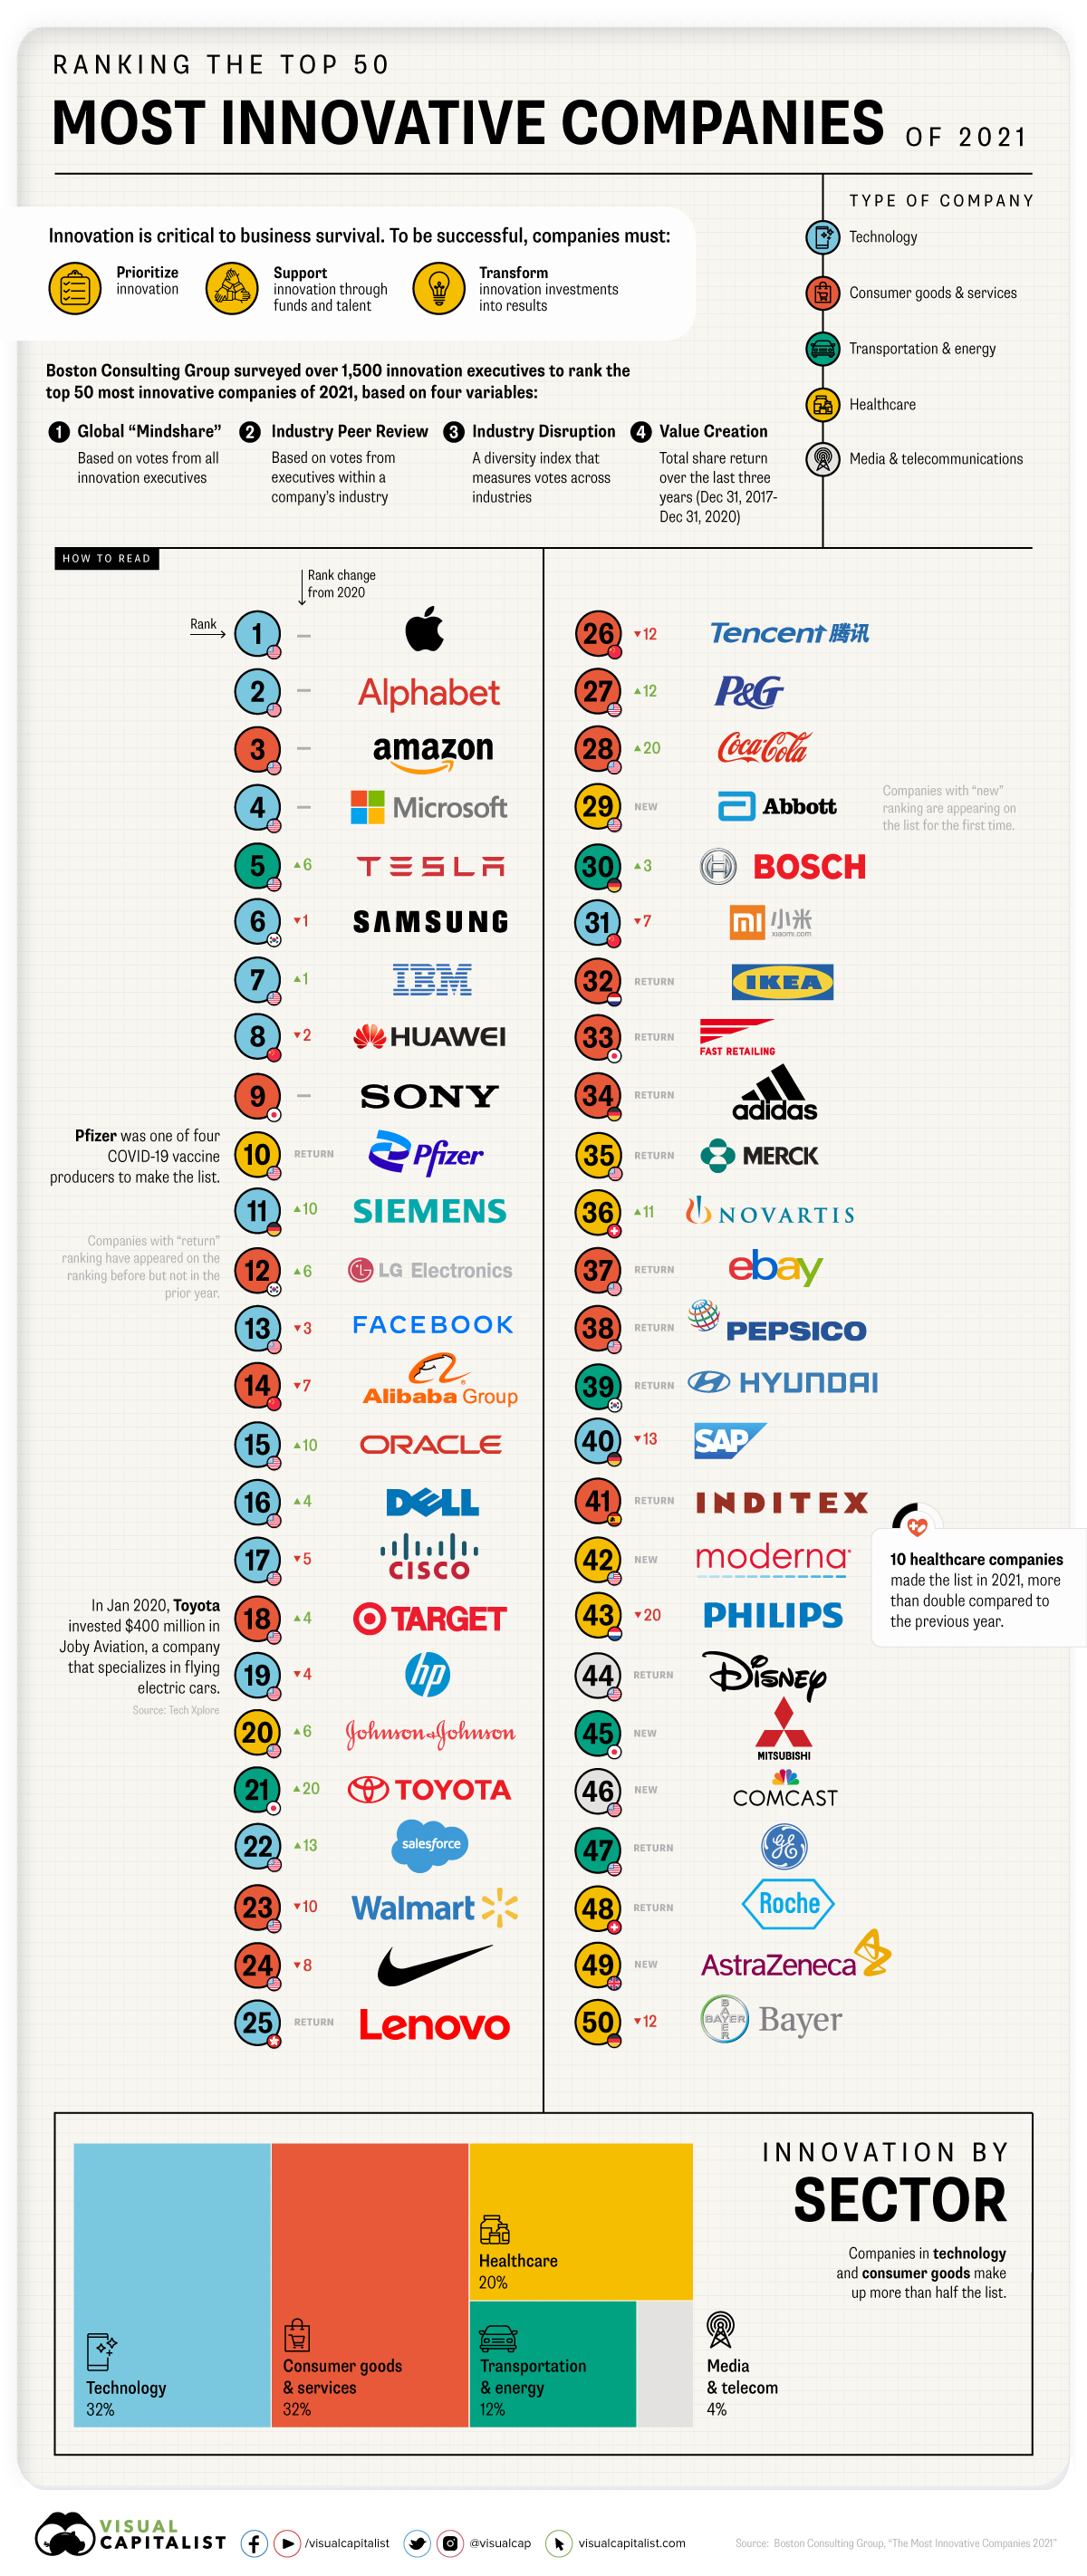 Top 50 Most Innovative Companies 2021